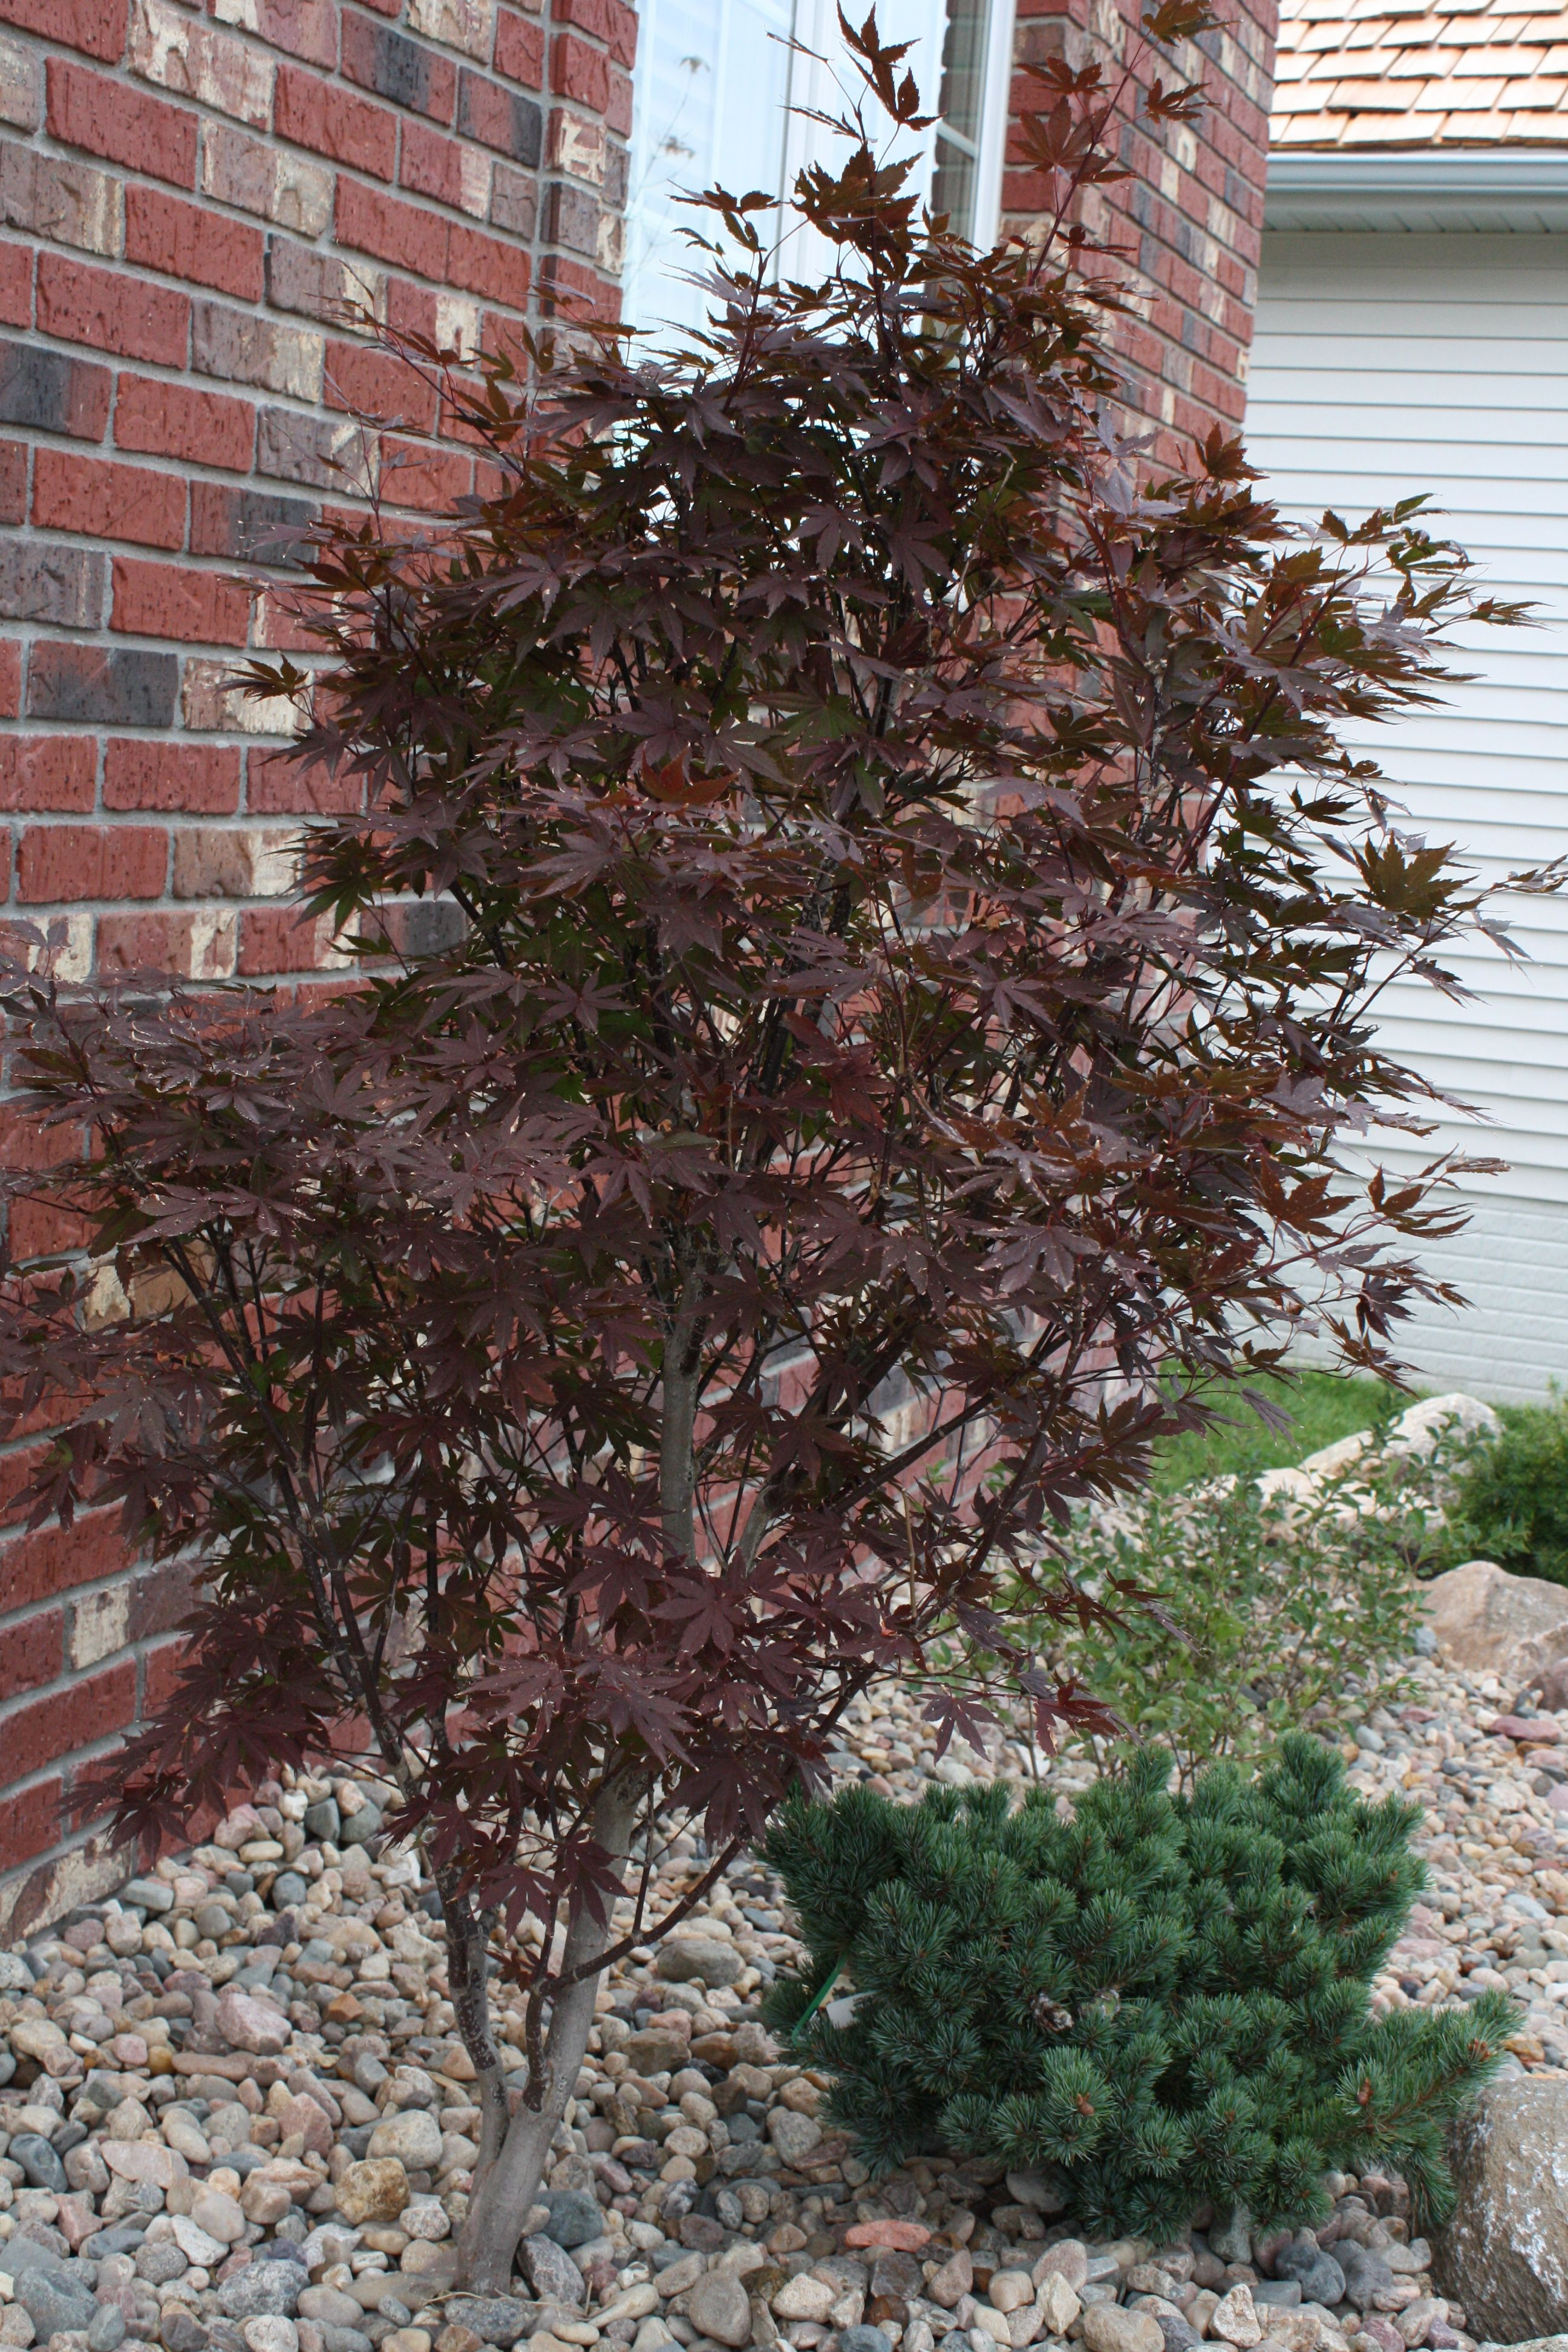 Nice Crimson Prince Japanese Maple With Kinpo Pine From Iseli Nursery  With Remarkable Crimson Prince Japanese Maple With Kinpo Pine From Iseli Nursery Boring Or  Landscape Designed With Captivating Olive Garden Apartments Also Stone Garden Furniture In Addition Toy Store Covent Garden And Wholesale Garden As Well As Chesington Garden Centre Additionally Cheap Garden Fencing Uk From Pinterestcom With   Remarkable Crimson Prince Japanese Maple With Kinpo Pine From Iseli Nursery  With Captivating Crimson Prince Japanese Maple With Kinpo Pine From Iseli Nursery Boring Or  Landscape Designed And Nice Olive Garden Apartments Also Stone Garden Furniture In Addition Toy Store Covent Garden From Pinterestcom